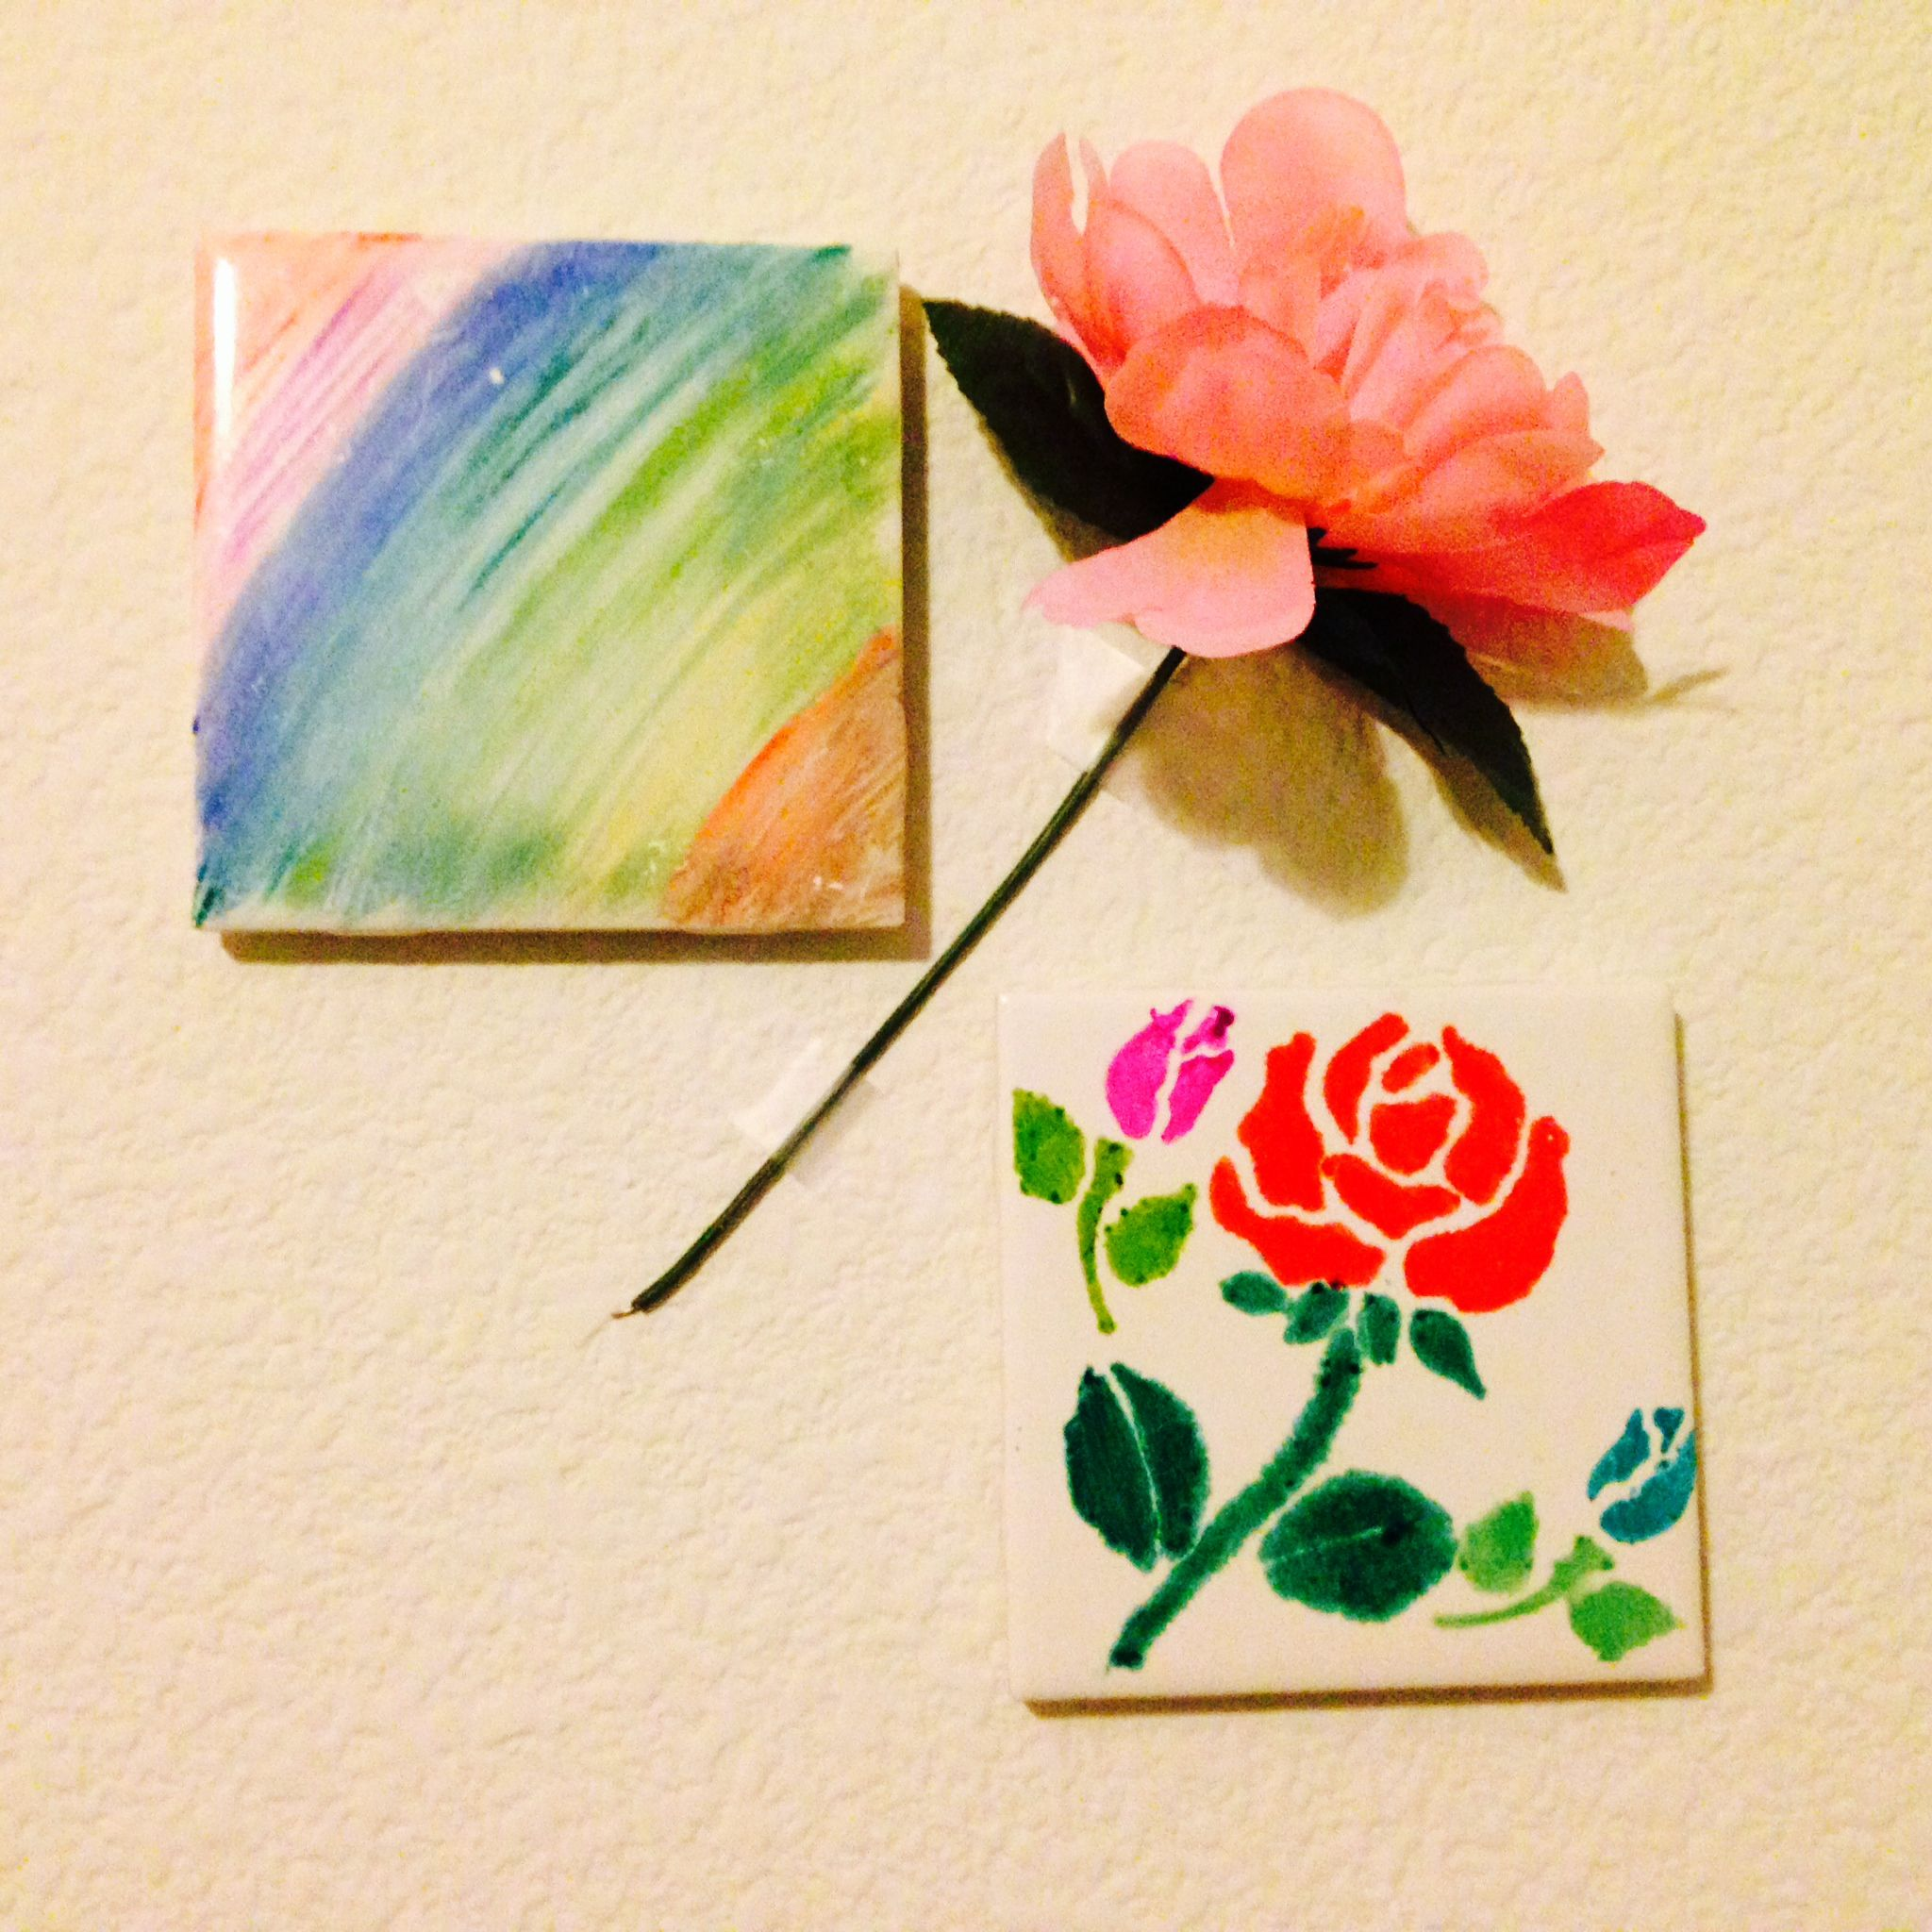 Diy sharpie tiles first use a cotton ball dipped in